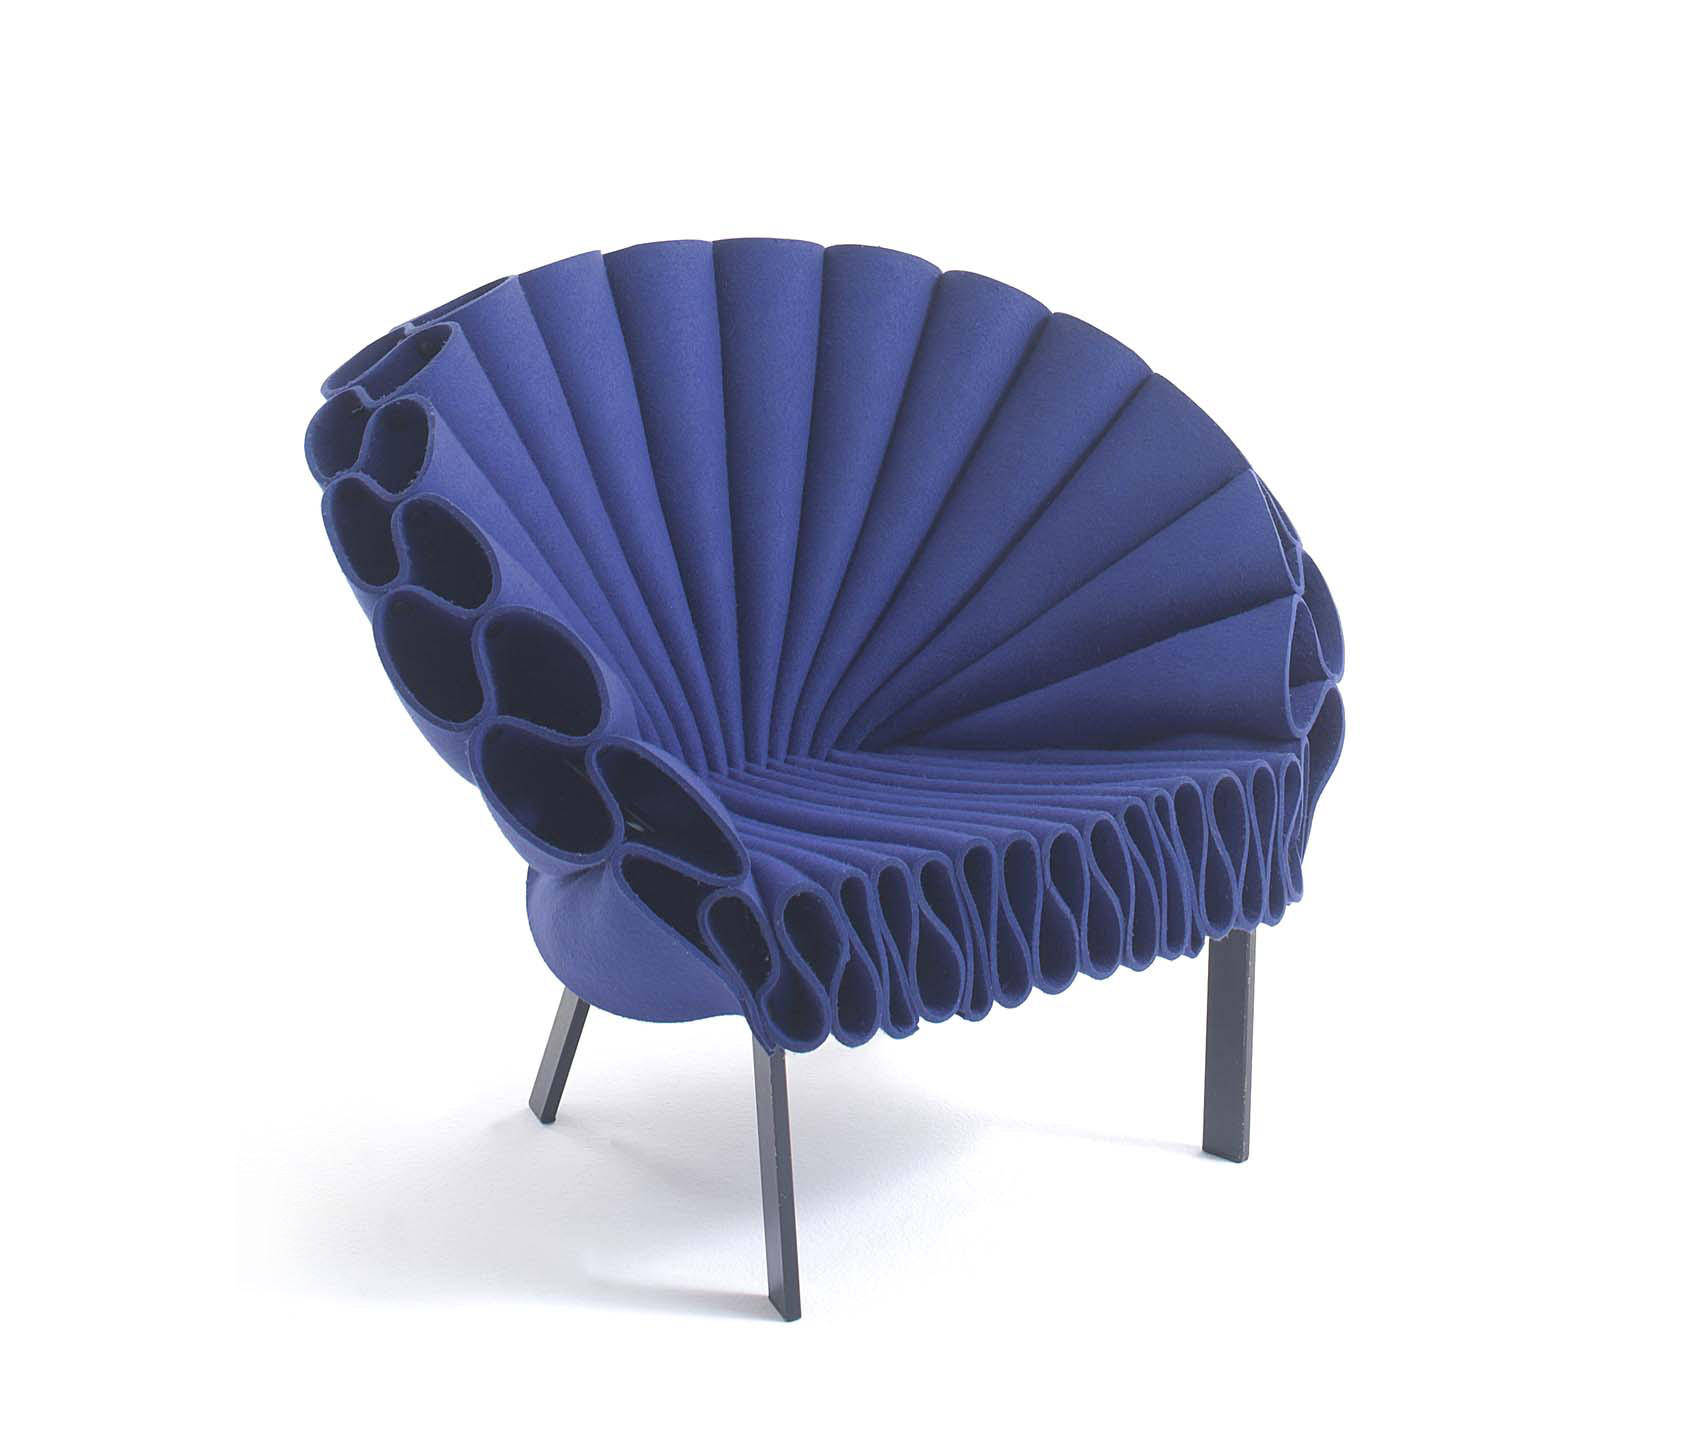 peacock  lounge chairs from cappellini  architonic - peacock by cappellini  lounge chairs